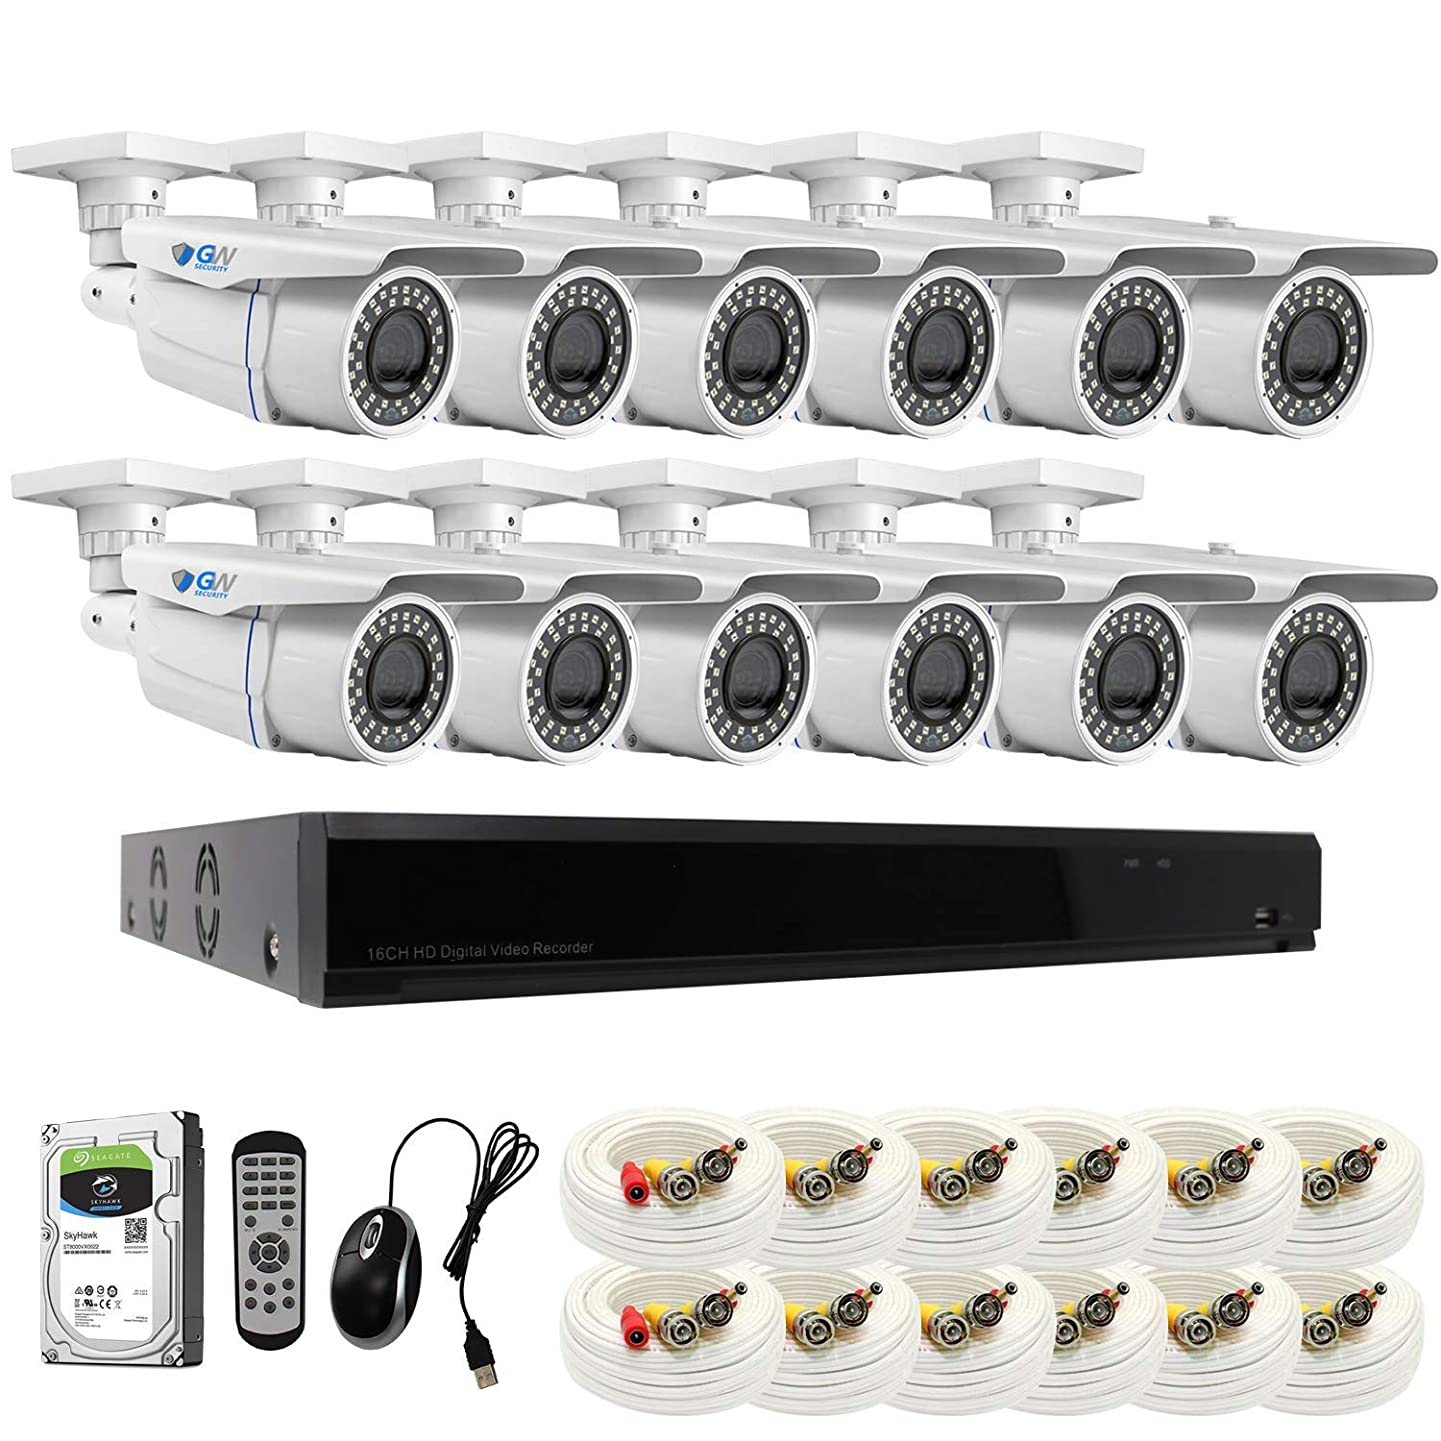 【2019 New】 GW 16CH 4K DVR H.265 8MP Complete Security System with (12) x 4K 2160P Waterproof 2.8-12mm Varifocal Zoom Bullet CCTV Security Cameras, 196ft IR Night Vision, 6TB Hard Drive